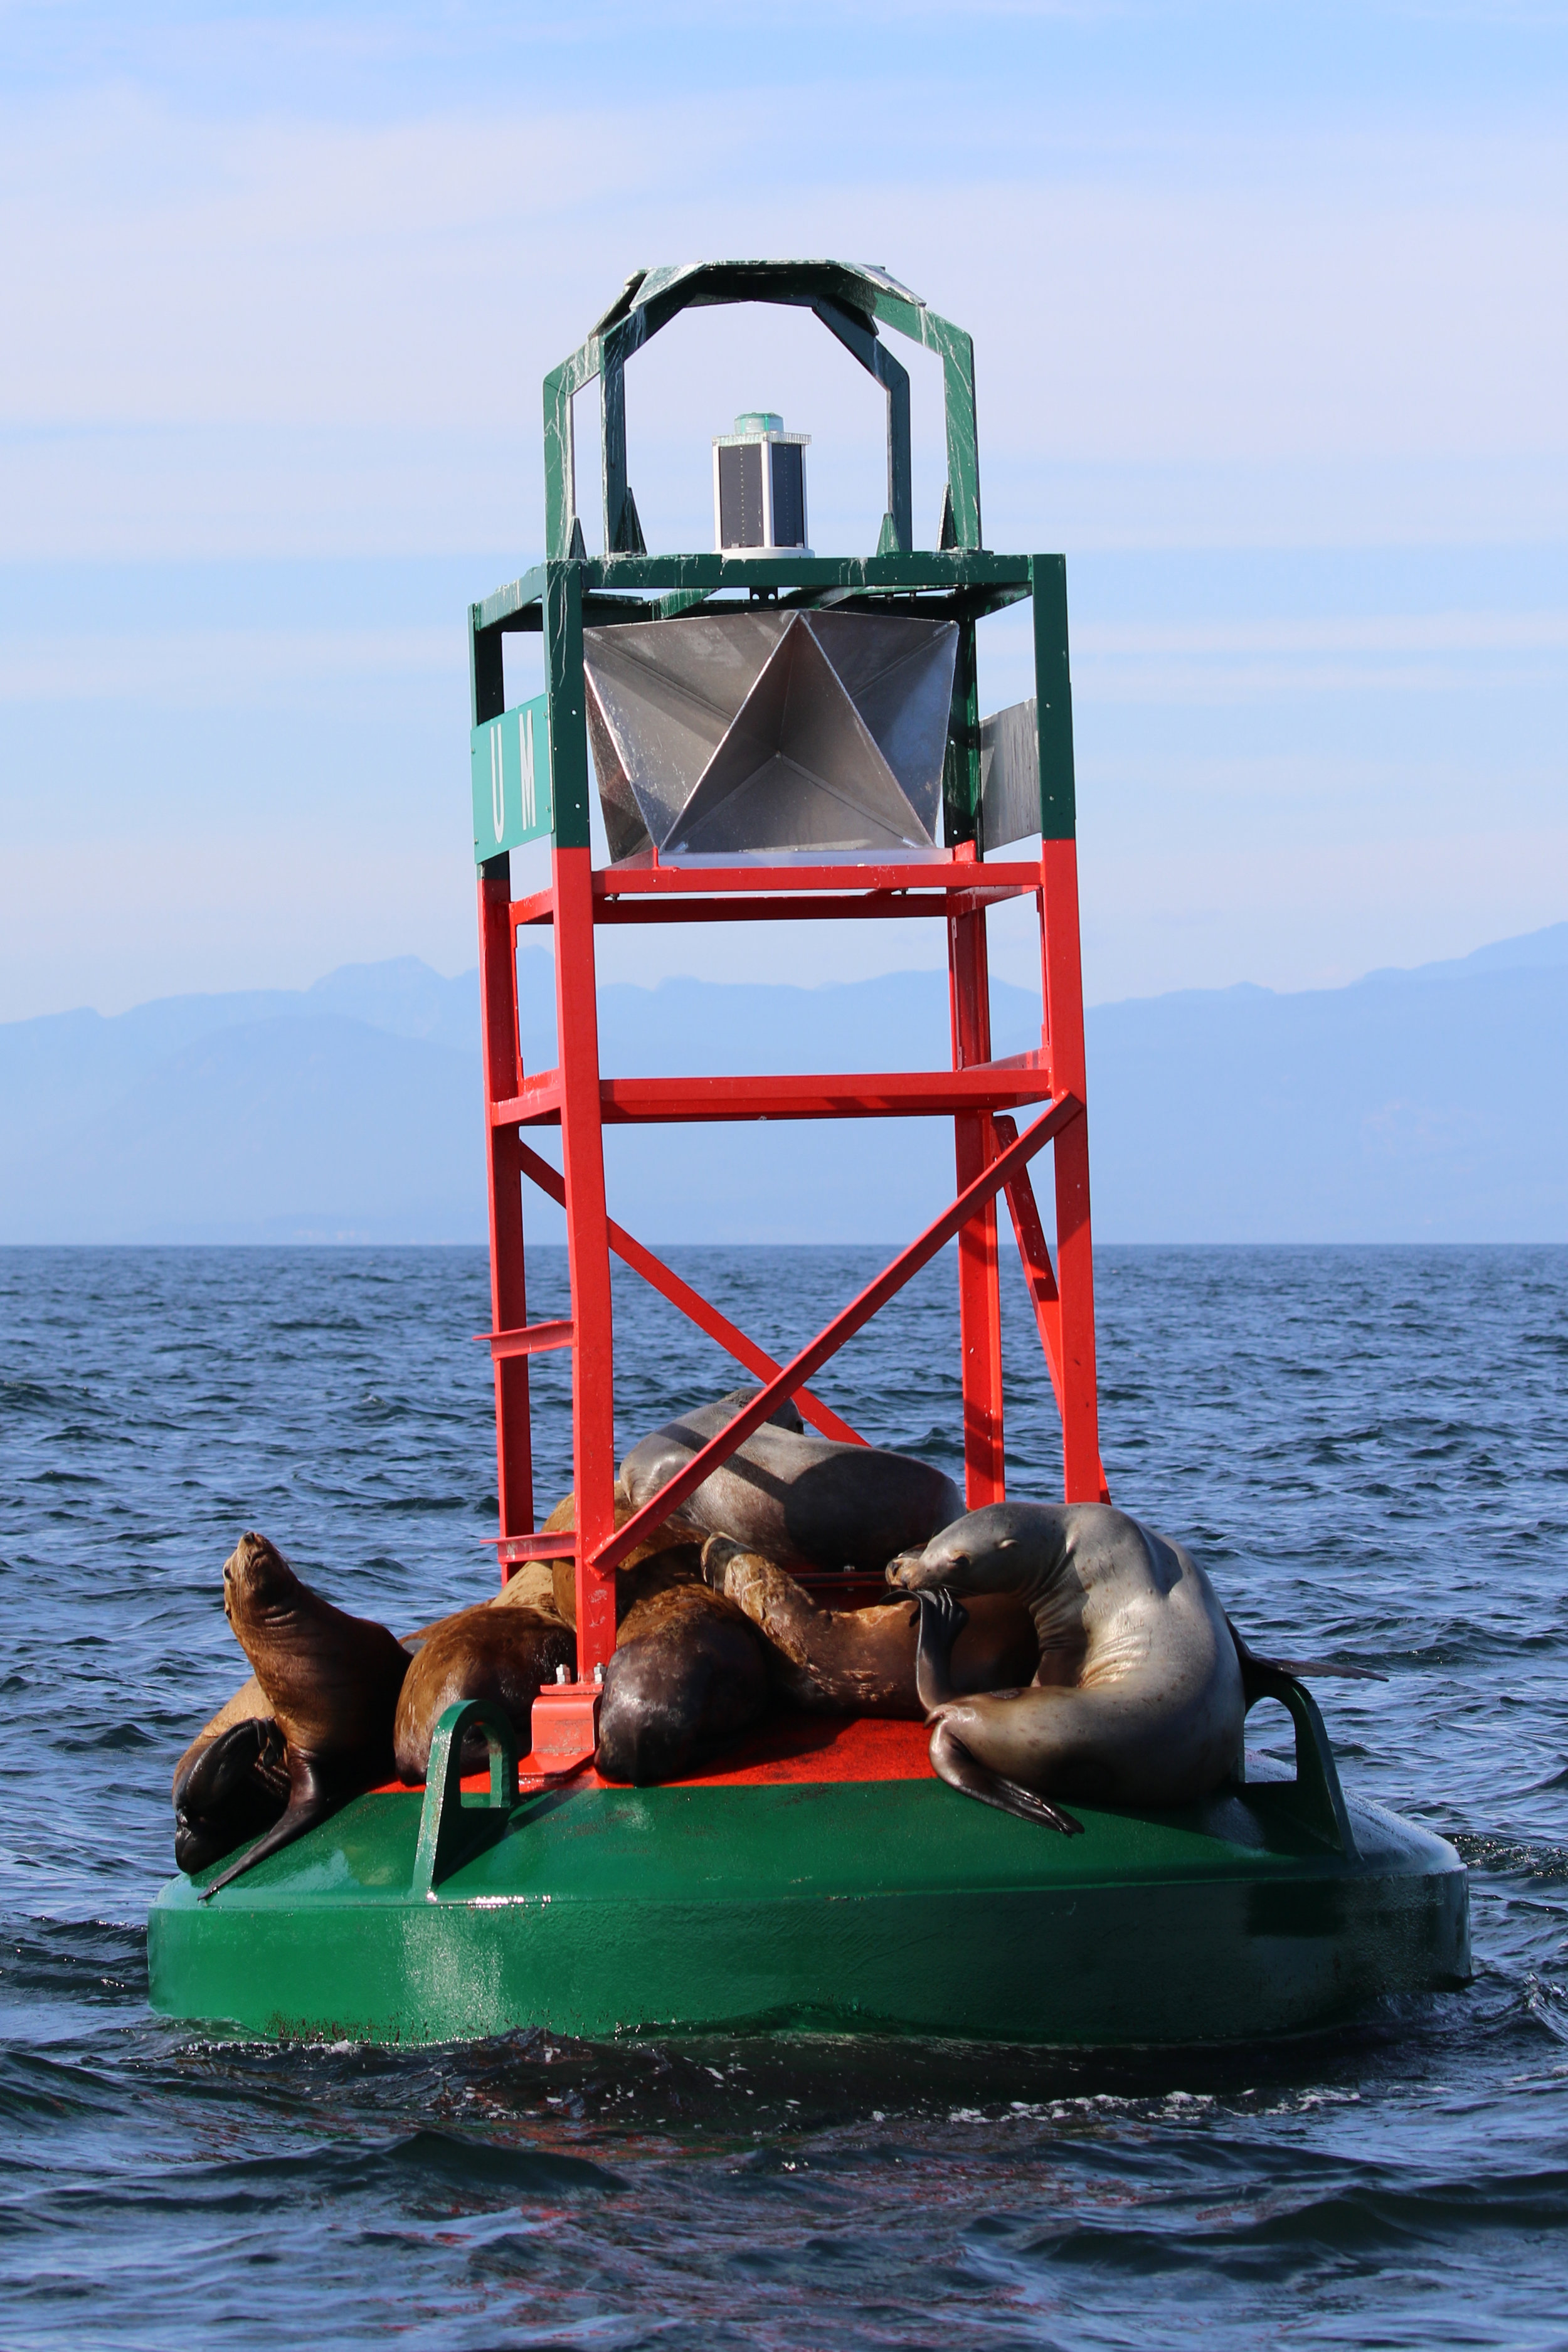 Our friendly neighbourhood Steller's Sea Lions! Photo by Ryan Uslu.